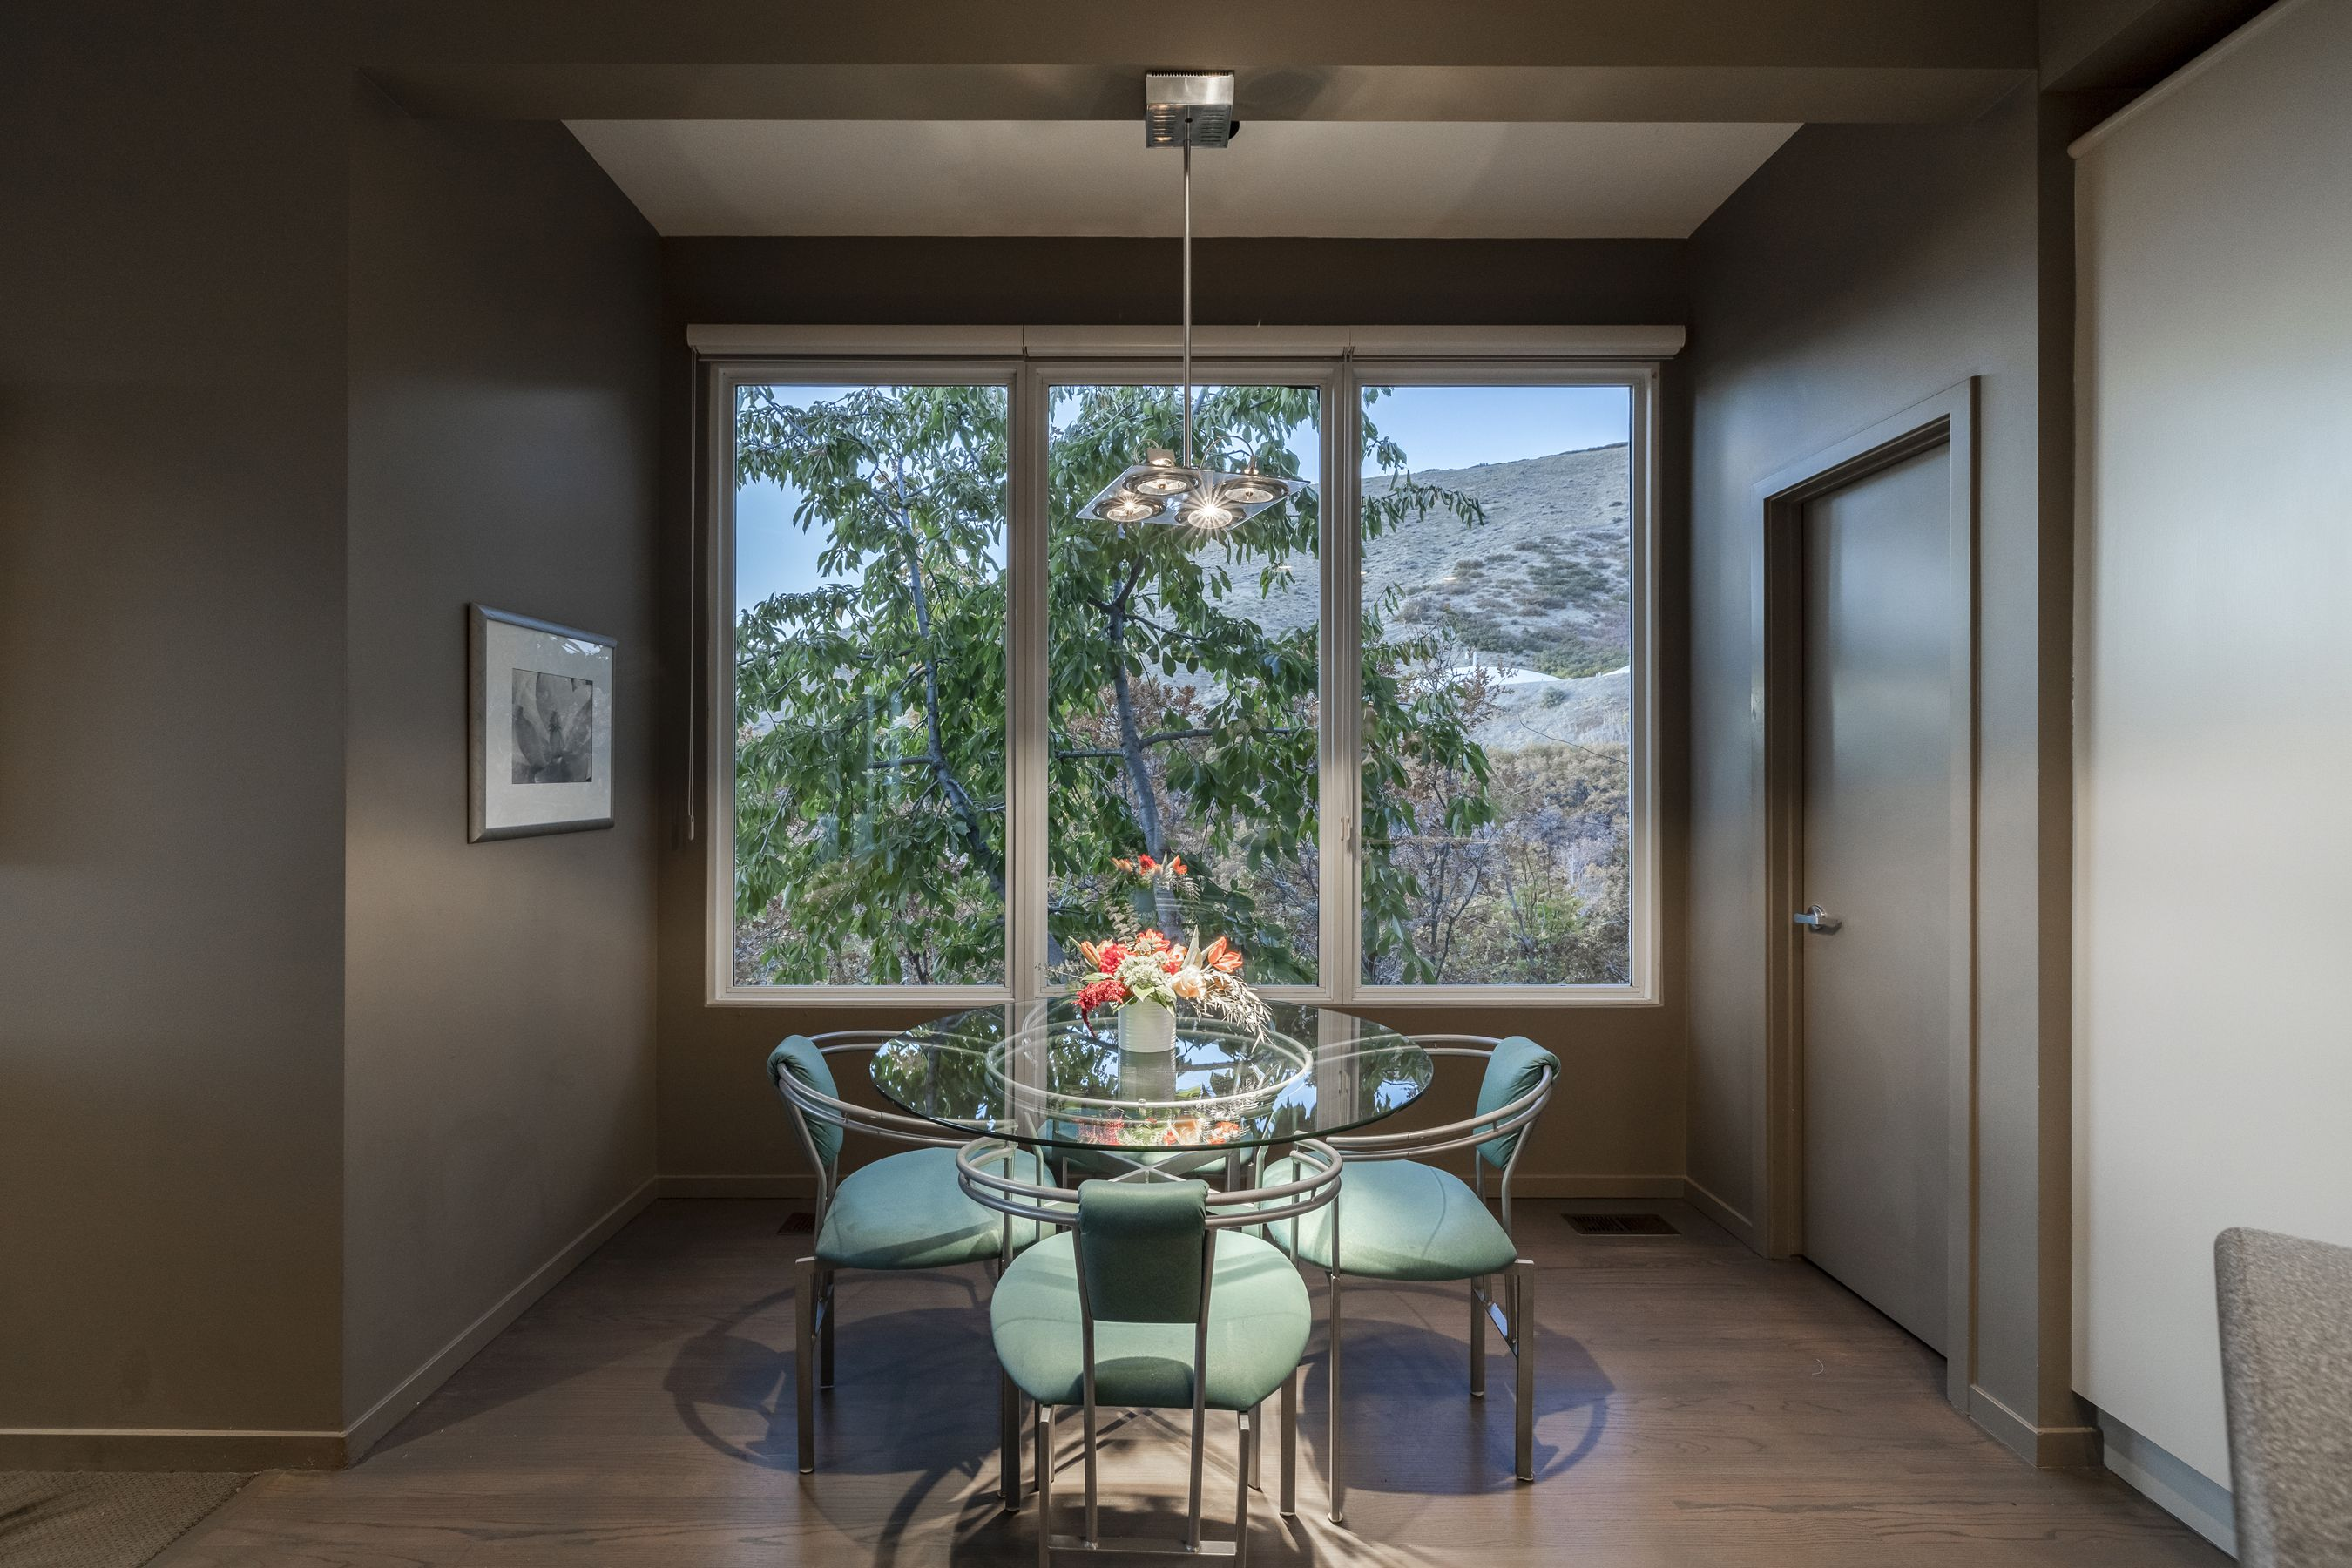 Tucked away up in the exclusive Carrigan Canyon neighborhood is an elegant, minimalist styled high-end home for the buyer who wants privacy, spectacular views, and a connection to Utah's natural beauty. #BreakfastNook #DiningArea #DiningRoom #LuxuryLiving #DreamHome #LuxuryLifestyle #Luxury #DreamHome #HomeDesign #HomeDecor #InteriorDesign #InteriorDecor #UtahHomes #WindermereUtah #LuxuryHome #MillionDollarListng